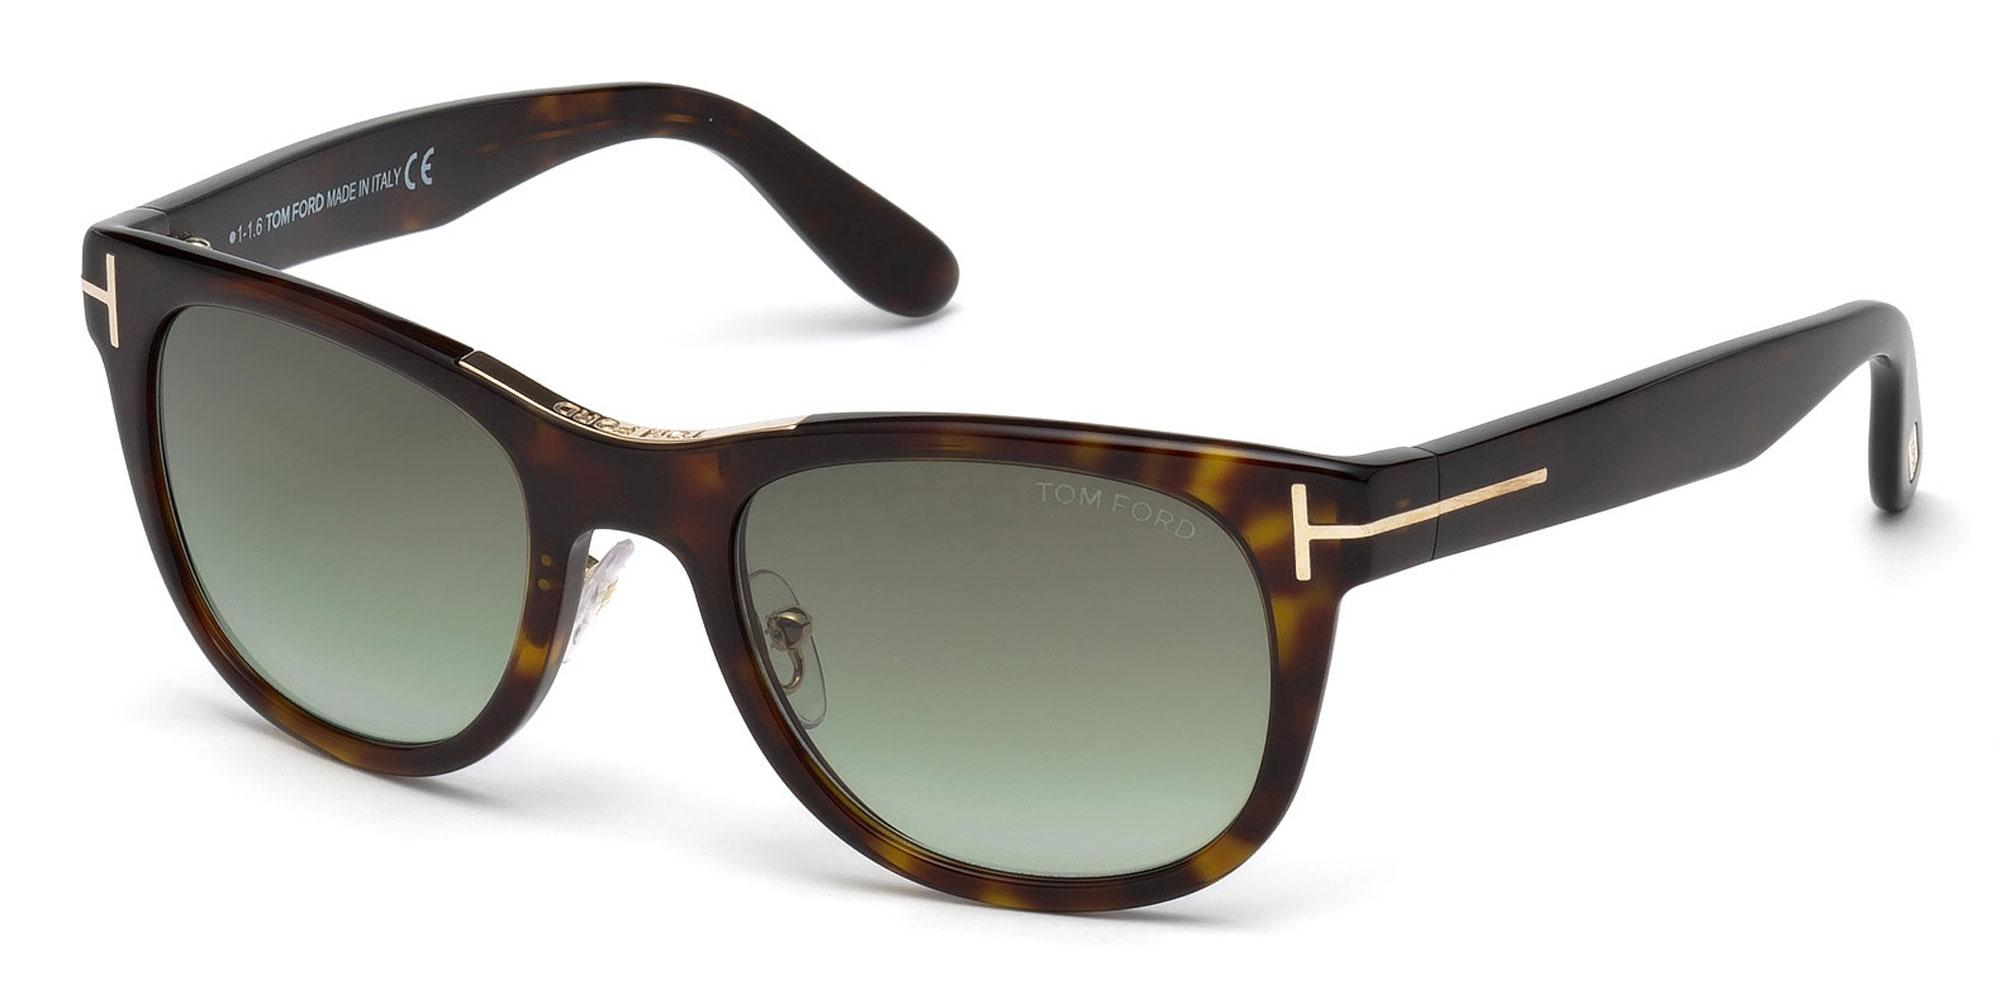 Tom Ford sunglasses Mark Ronson